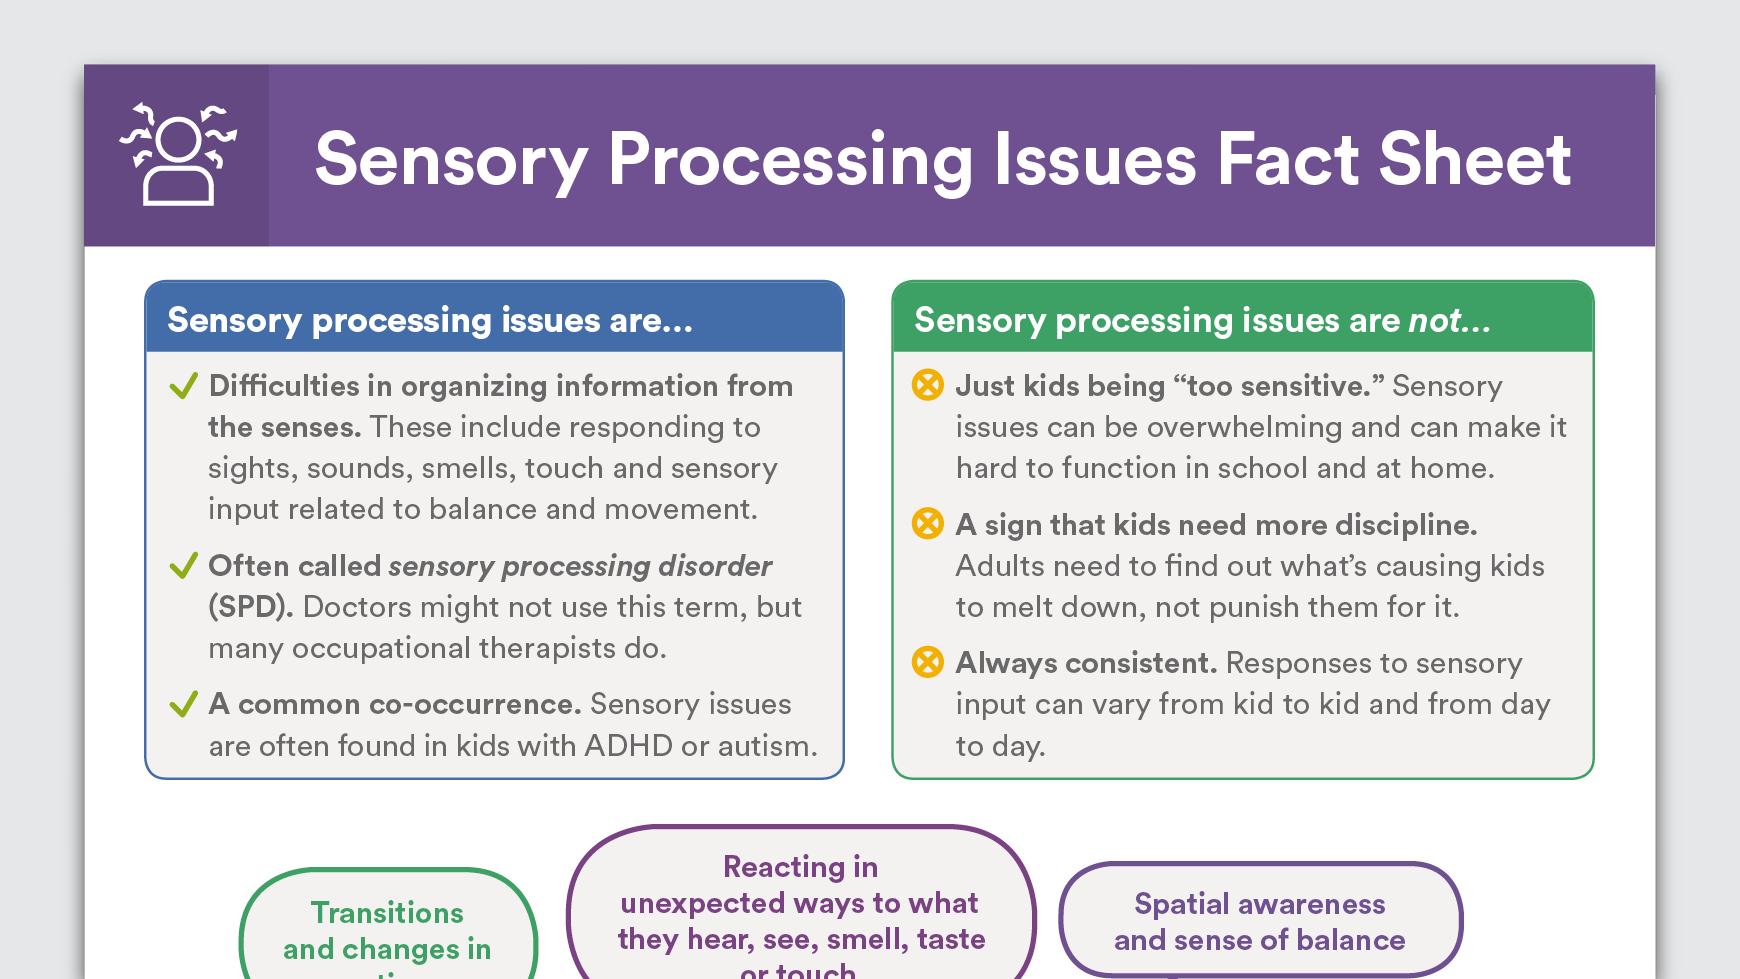 How Sensory Processing Issues Affect >> Sensory Processing Issues Fact Sheet Special Kiddo Info Sensory